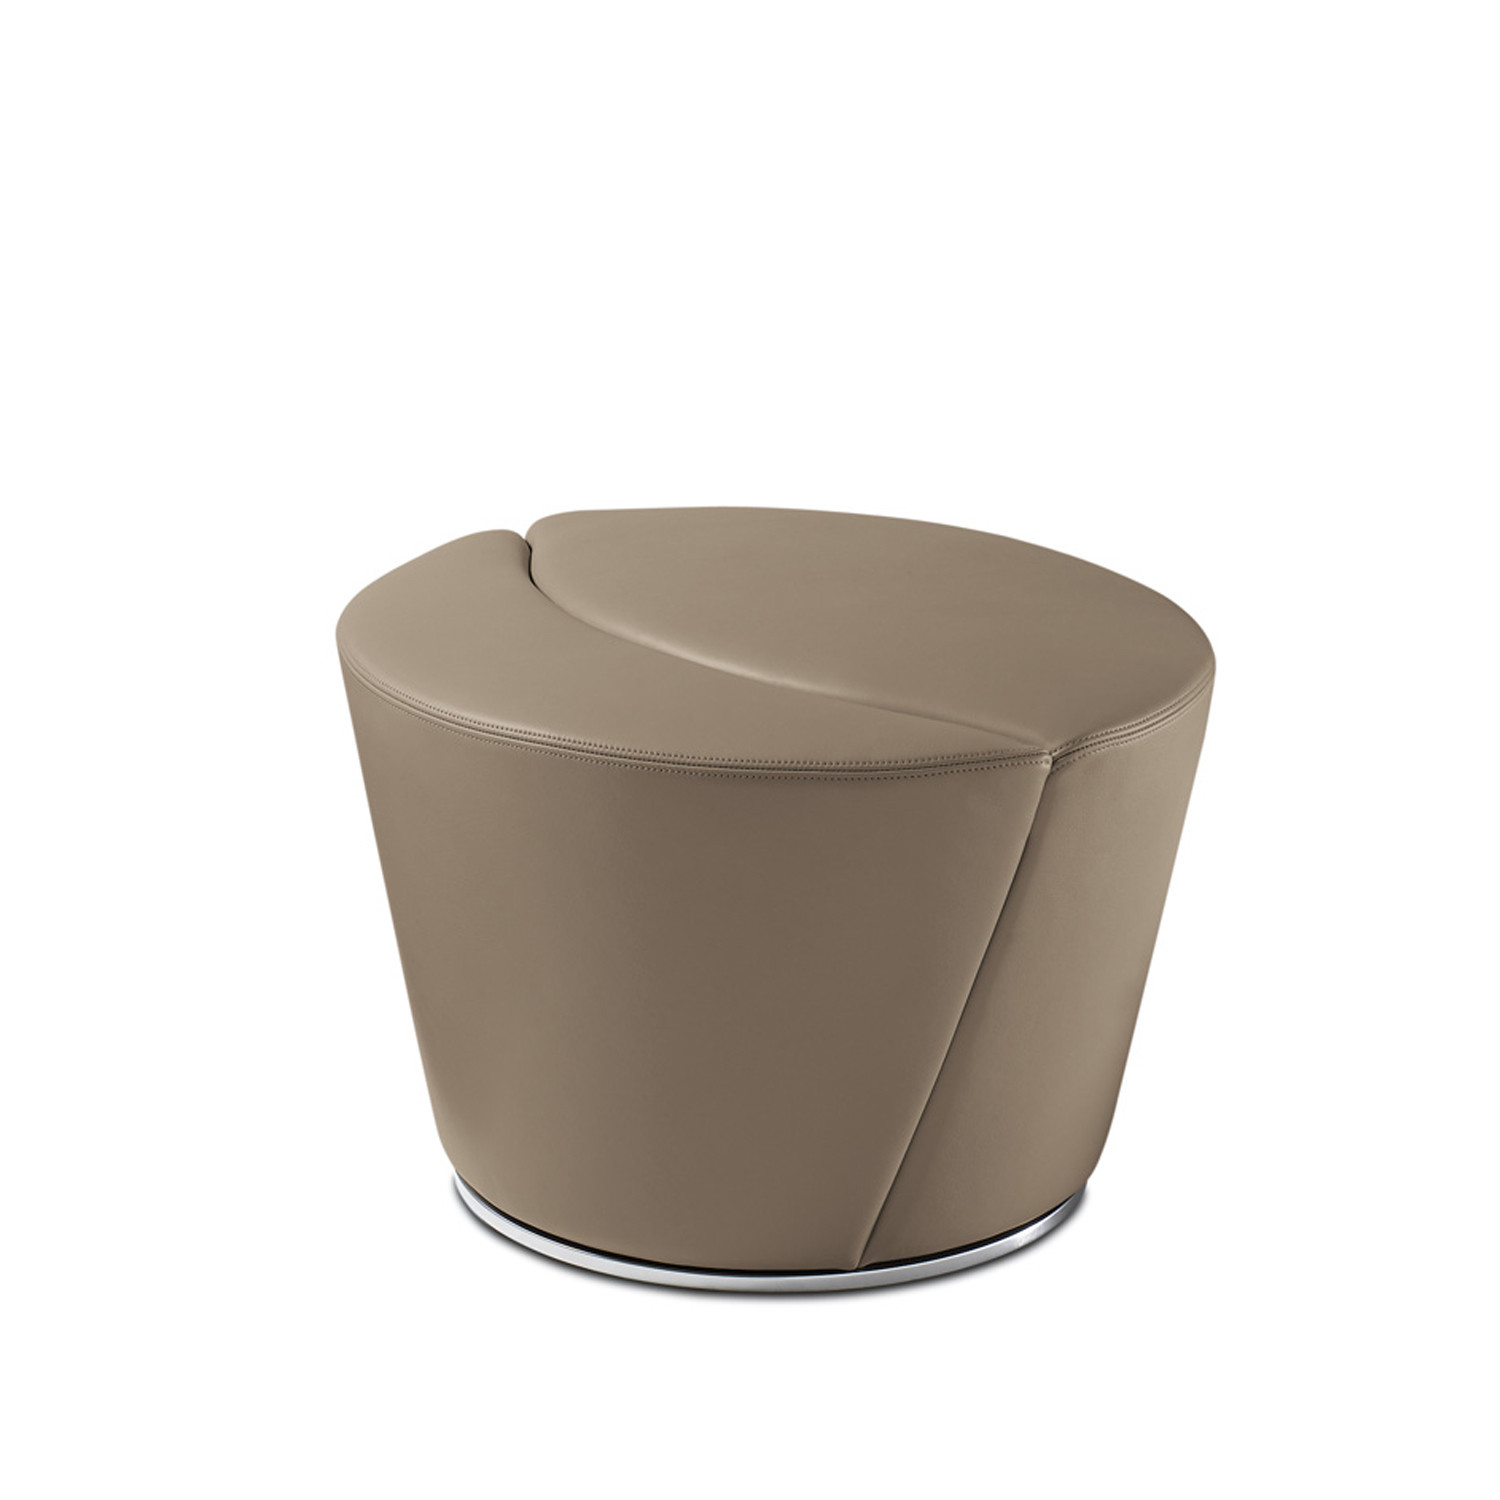 Ameo by Walter Knoll